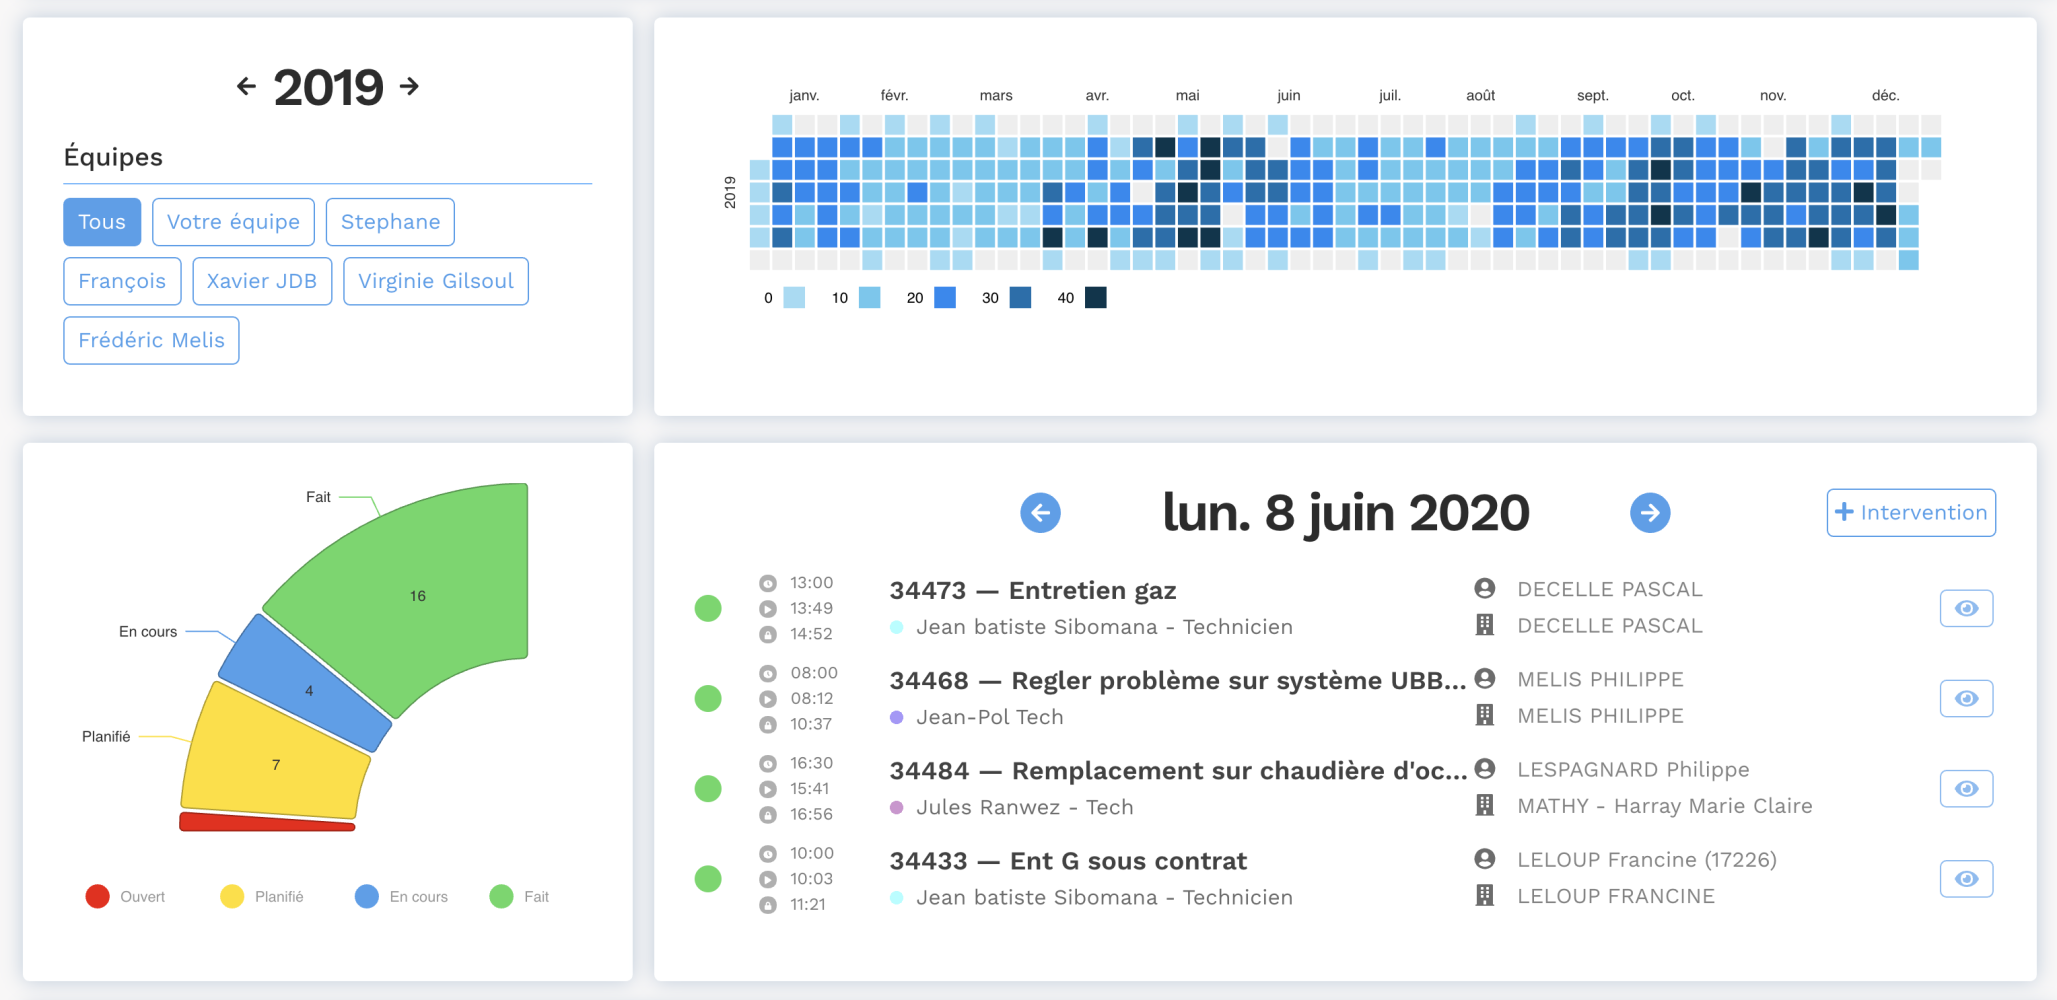 Optimisation de la planification des interventions grâce à la visualisation des data